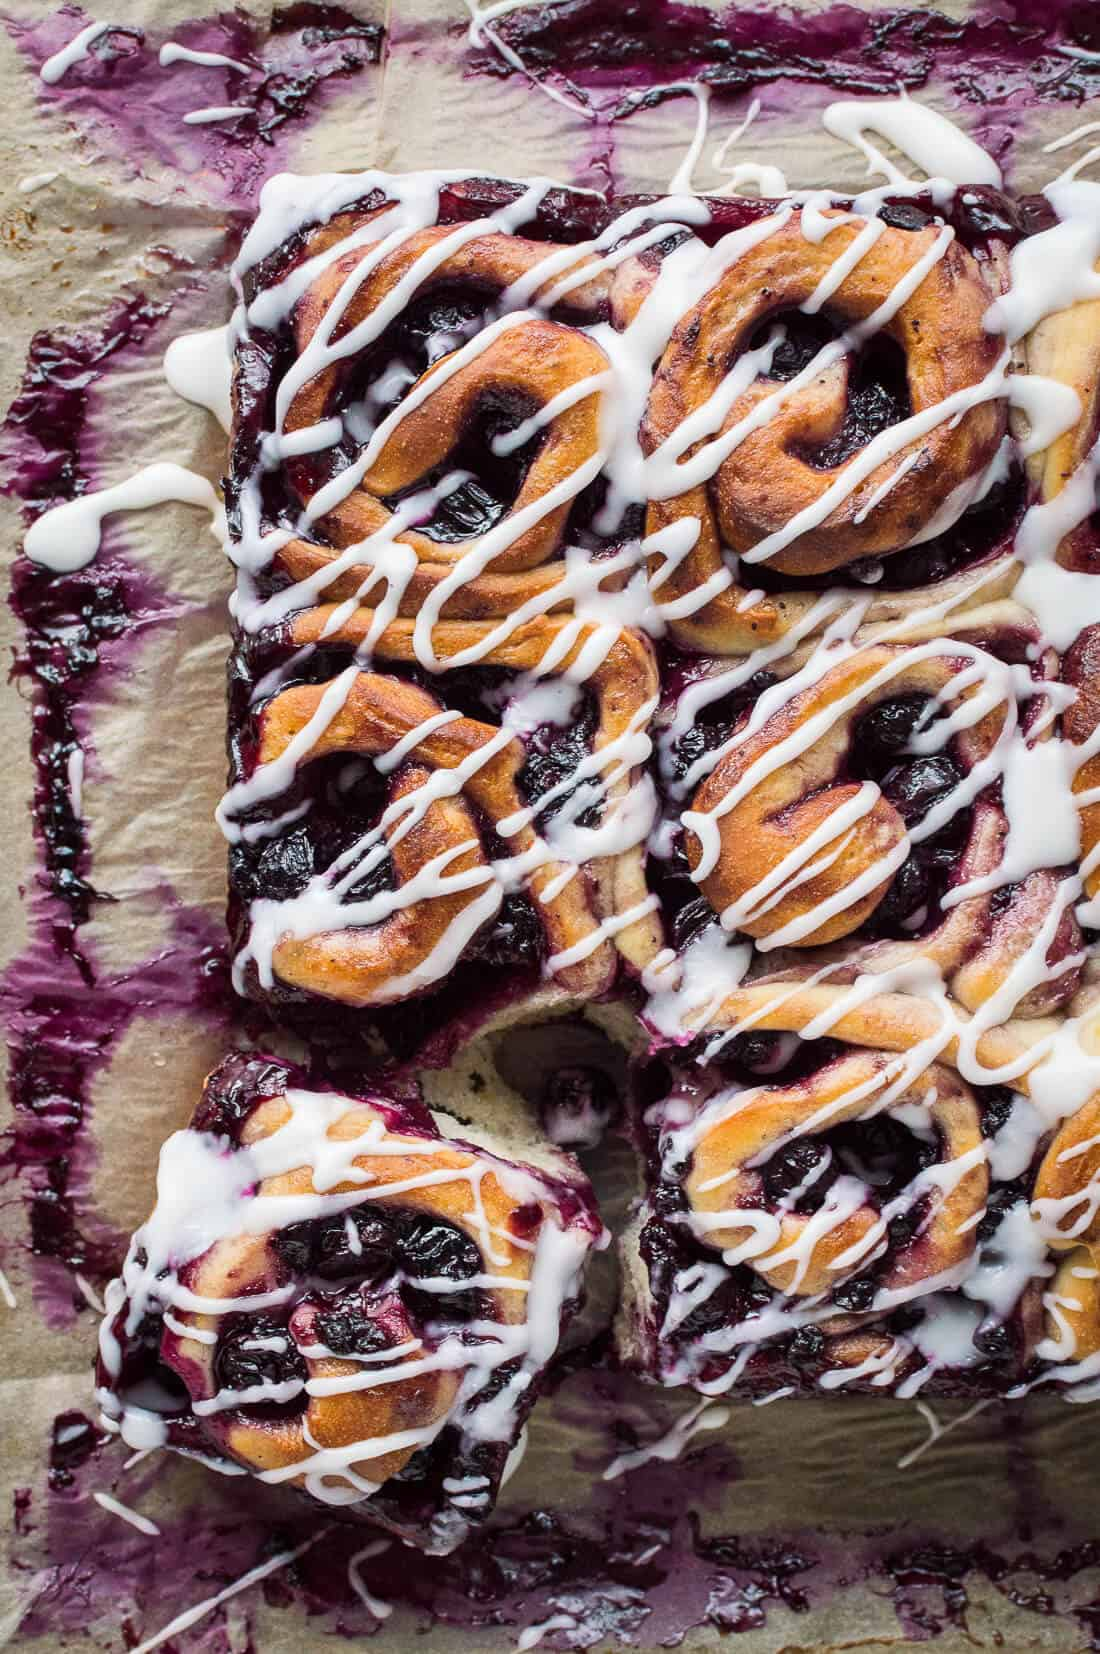 A top down shot of vegan lemon blueberry sweet rolls drizzled with lemon glaze on a sheet of baking parchment